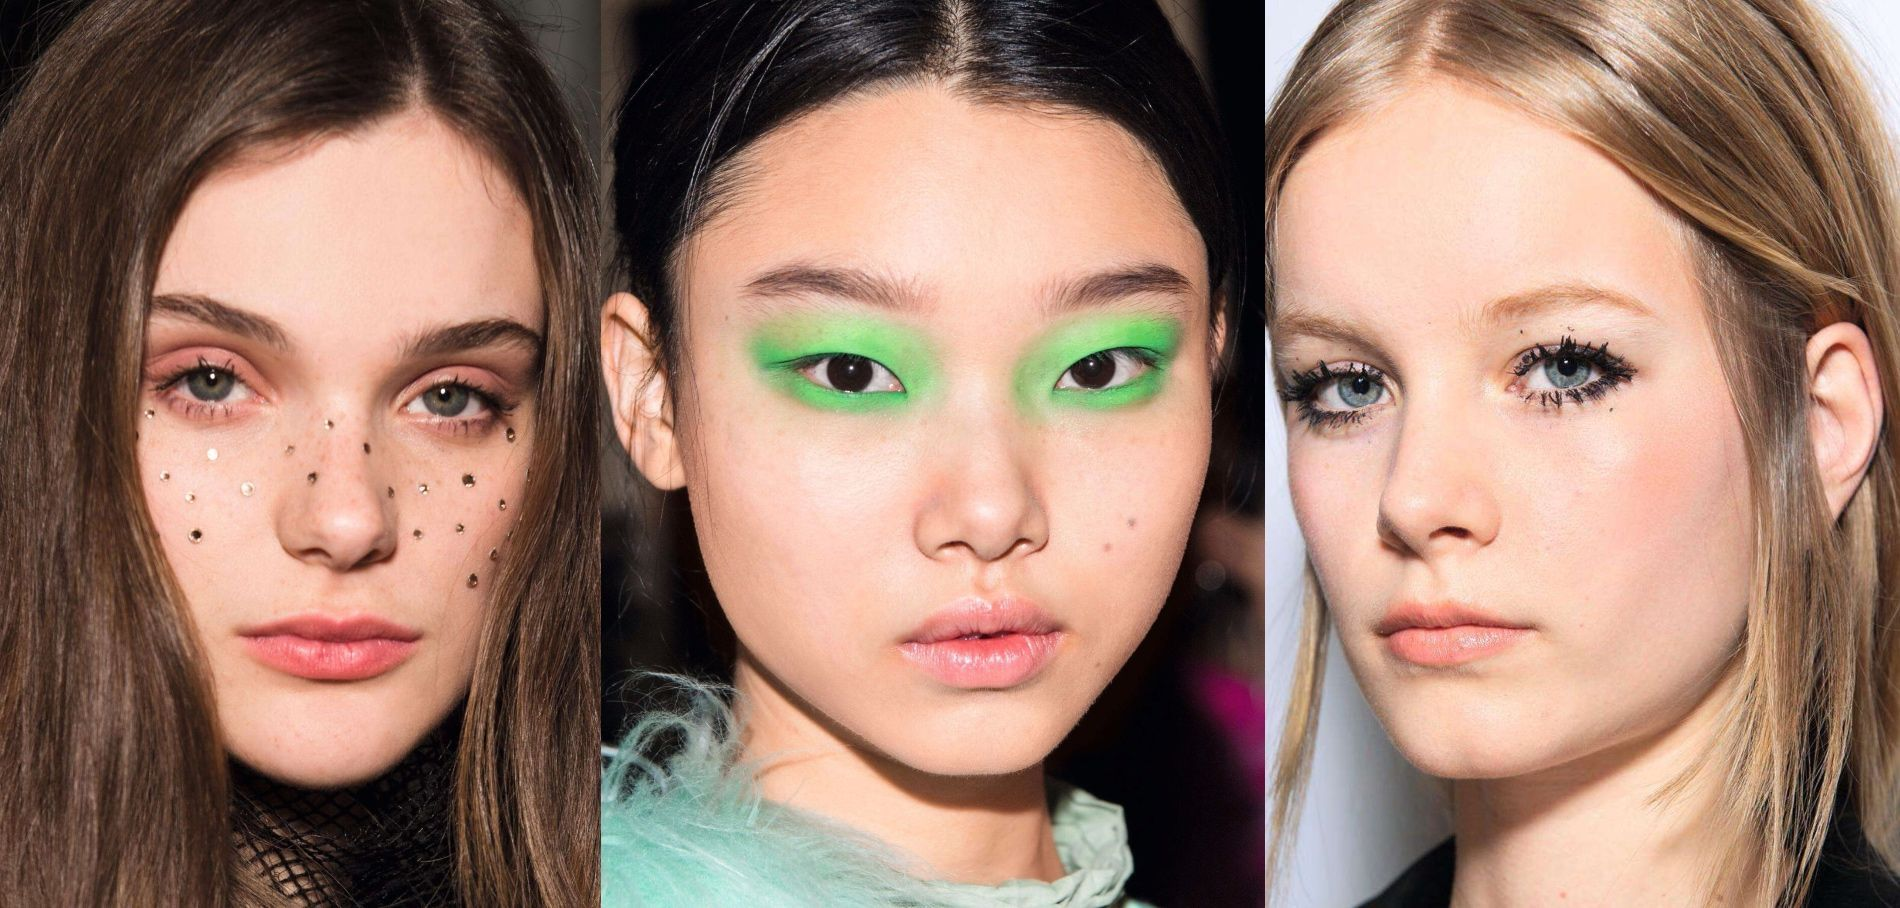 Make-up : quand la beauté printemps-été 2020 pique un fard